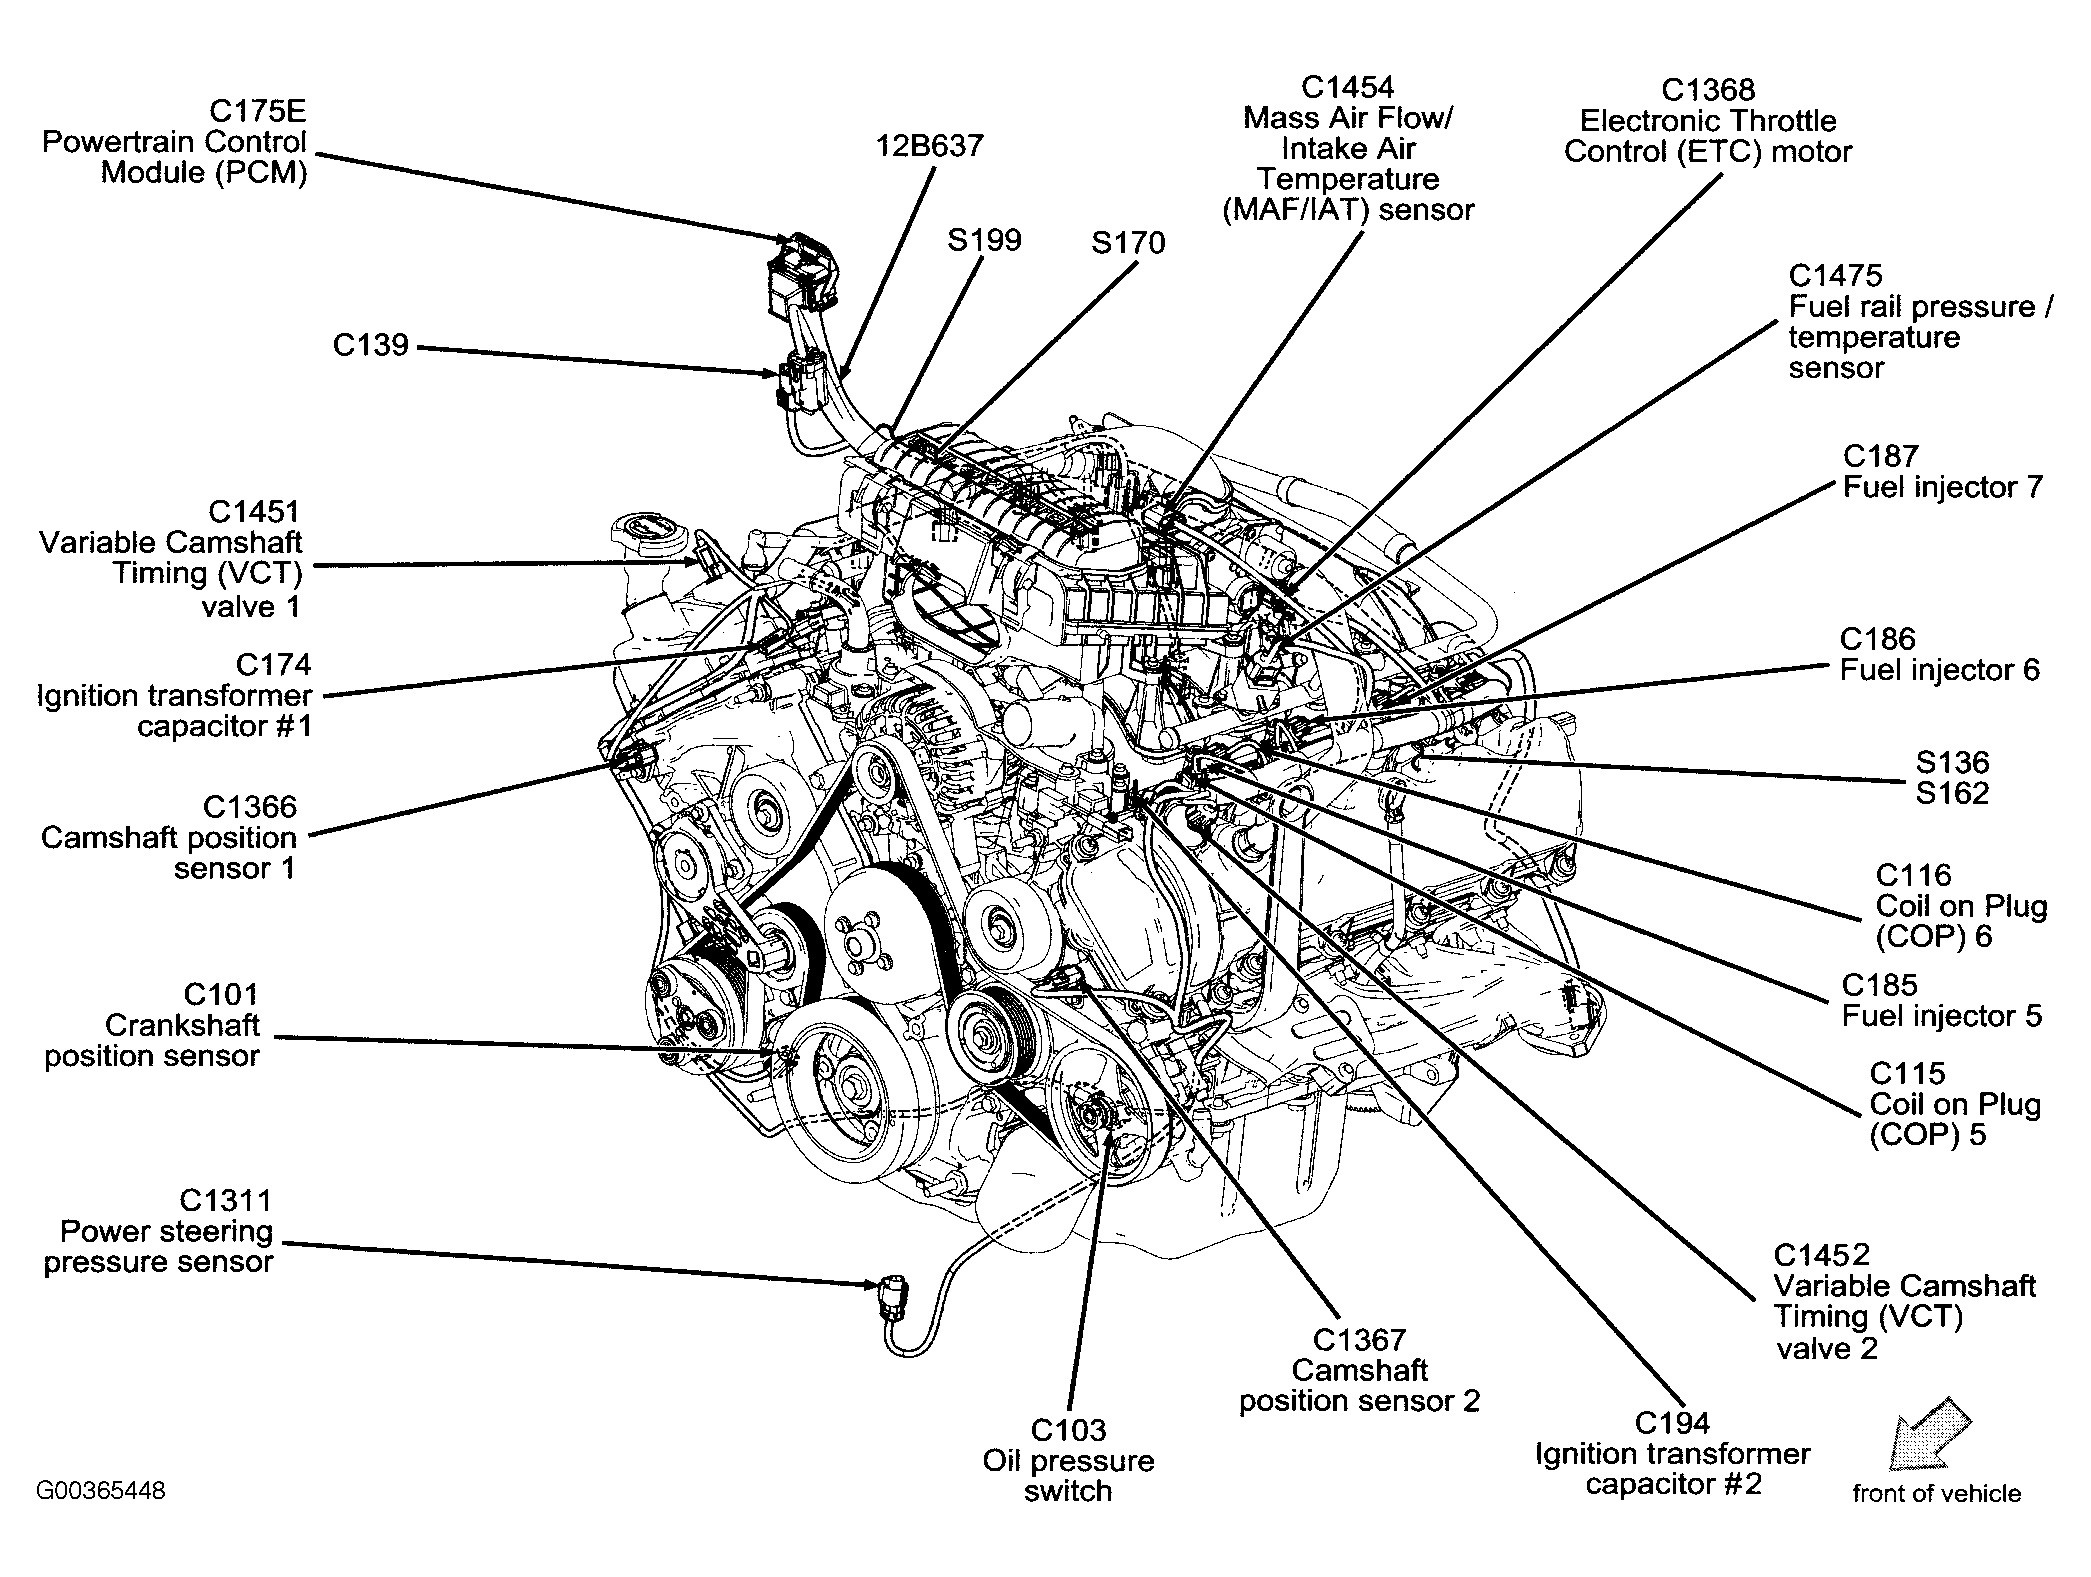 1996 ford Explorer Engine Diagram ford Escape Engine Diagram Simple Guide About Wiring Diagram • Of 1996 ford Explorer Engine Diagram